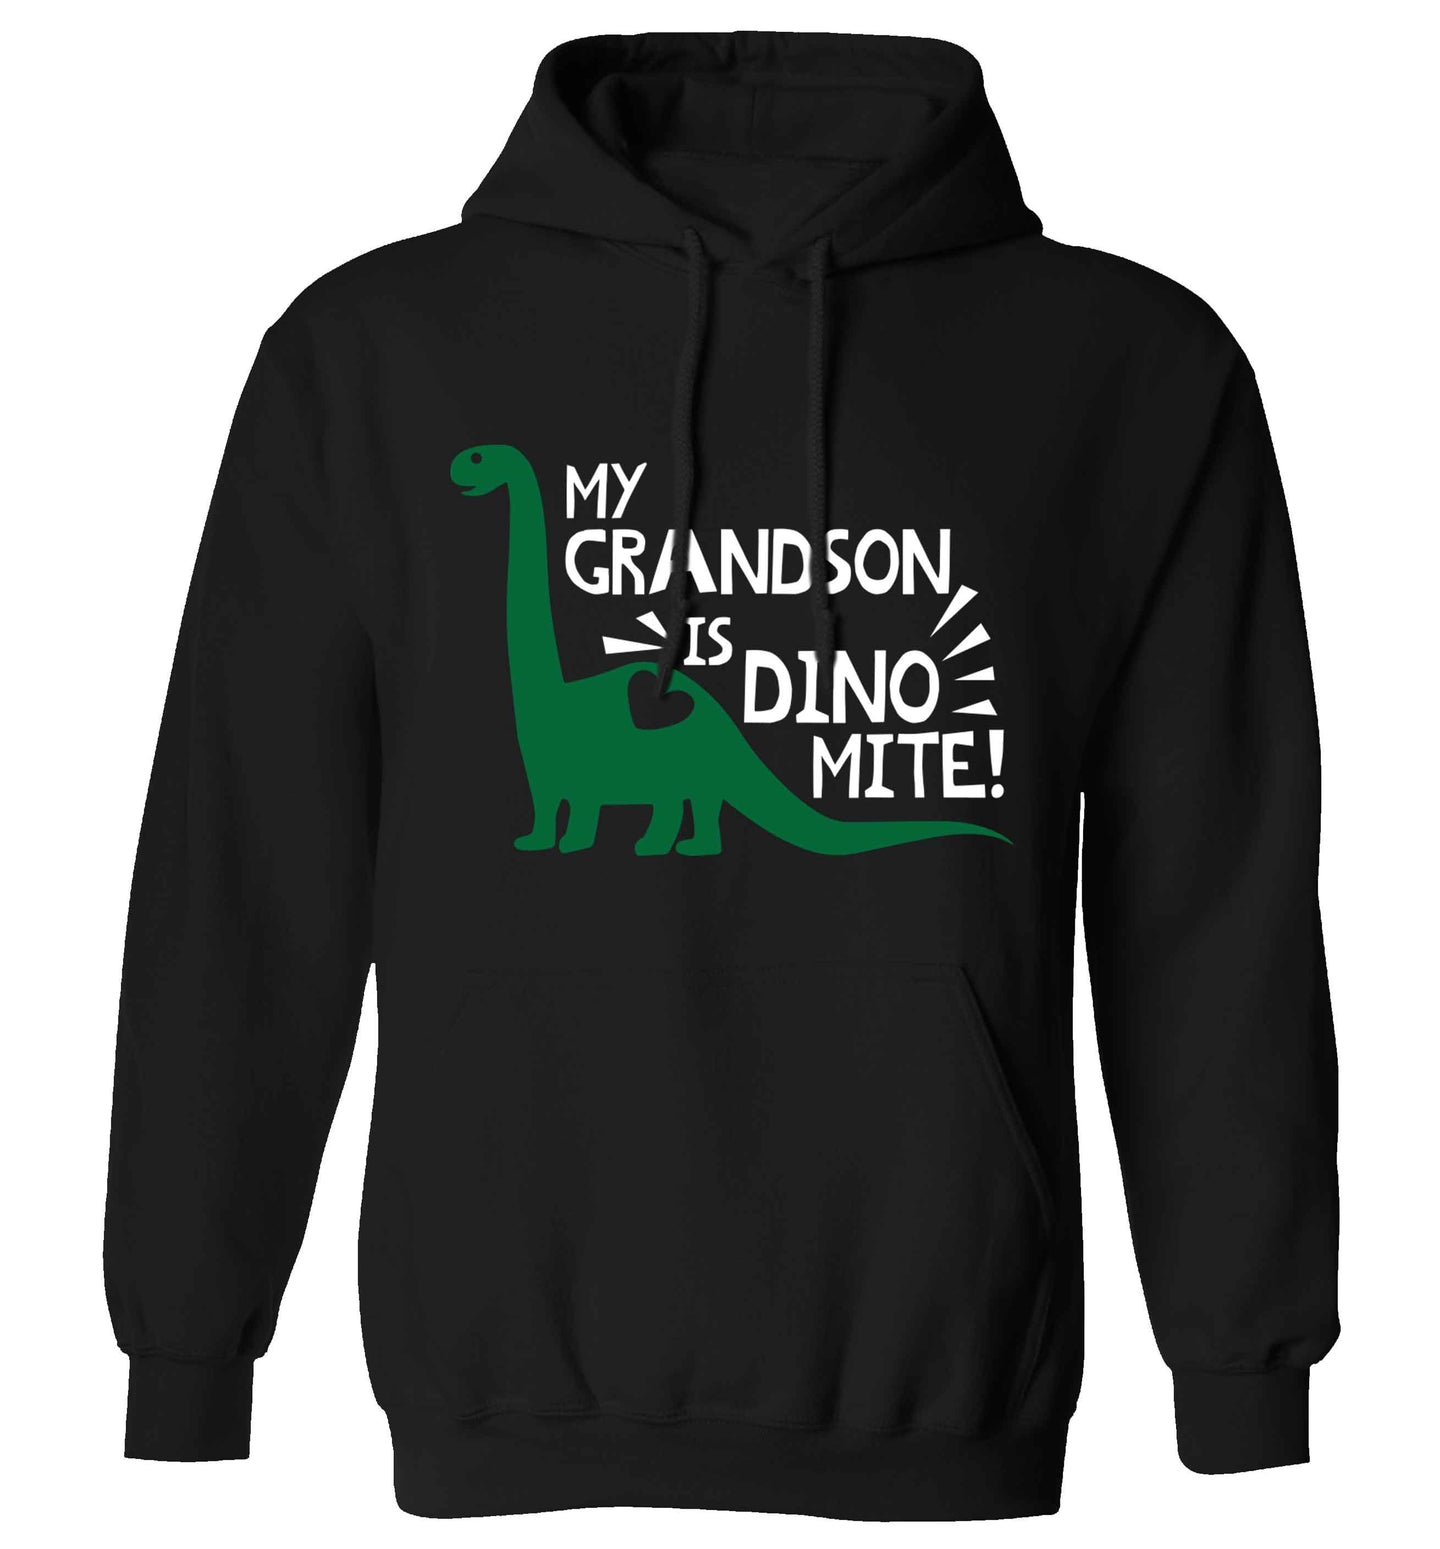 My grandson is dinomite! adults unisex black hoodie 2XL